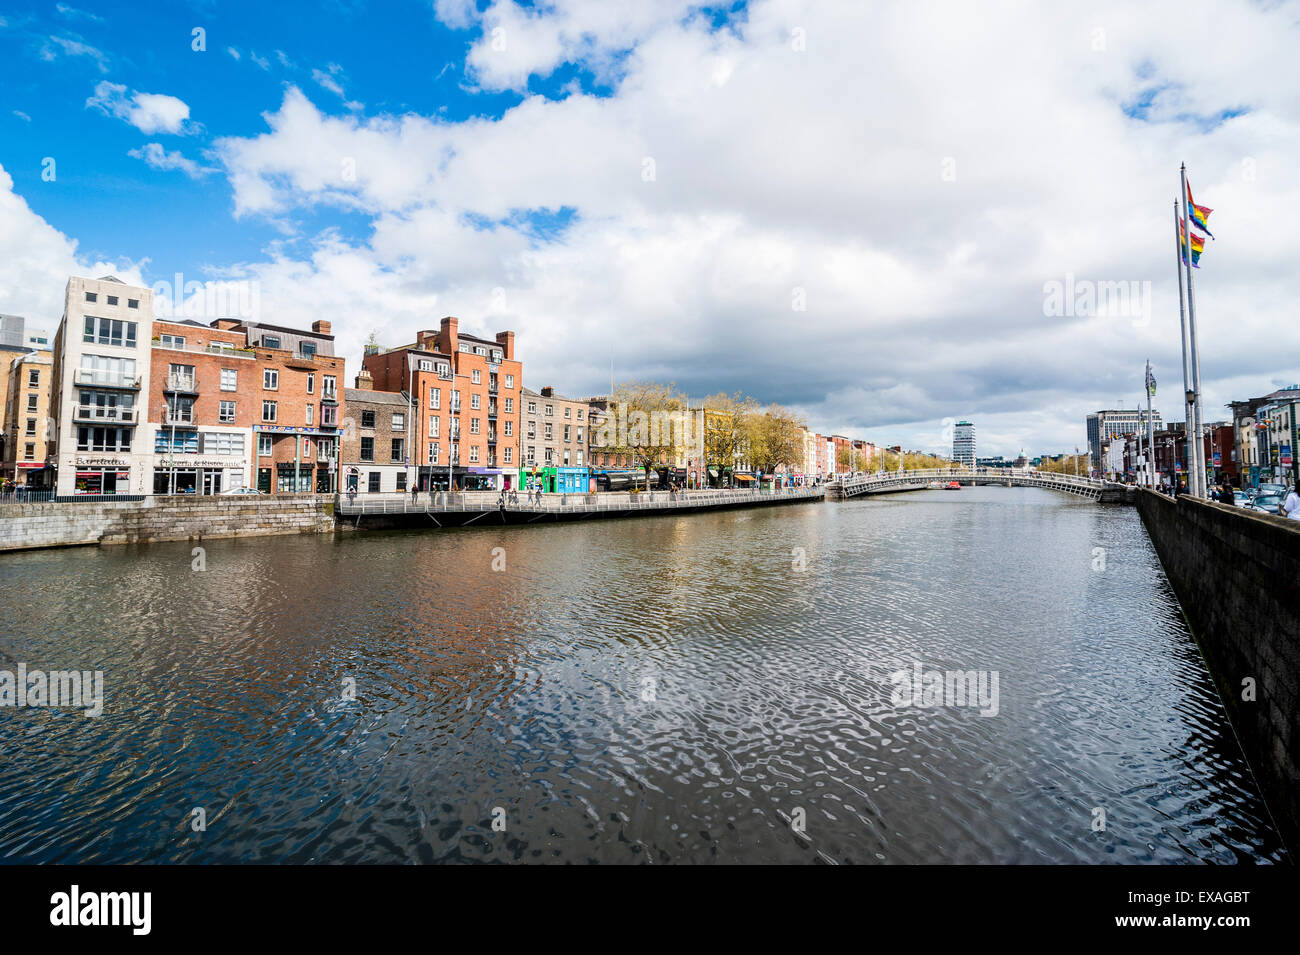 River Liffey flowing through Dublin, Republic of Ireland, Europe - Stock Image